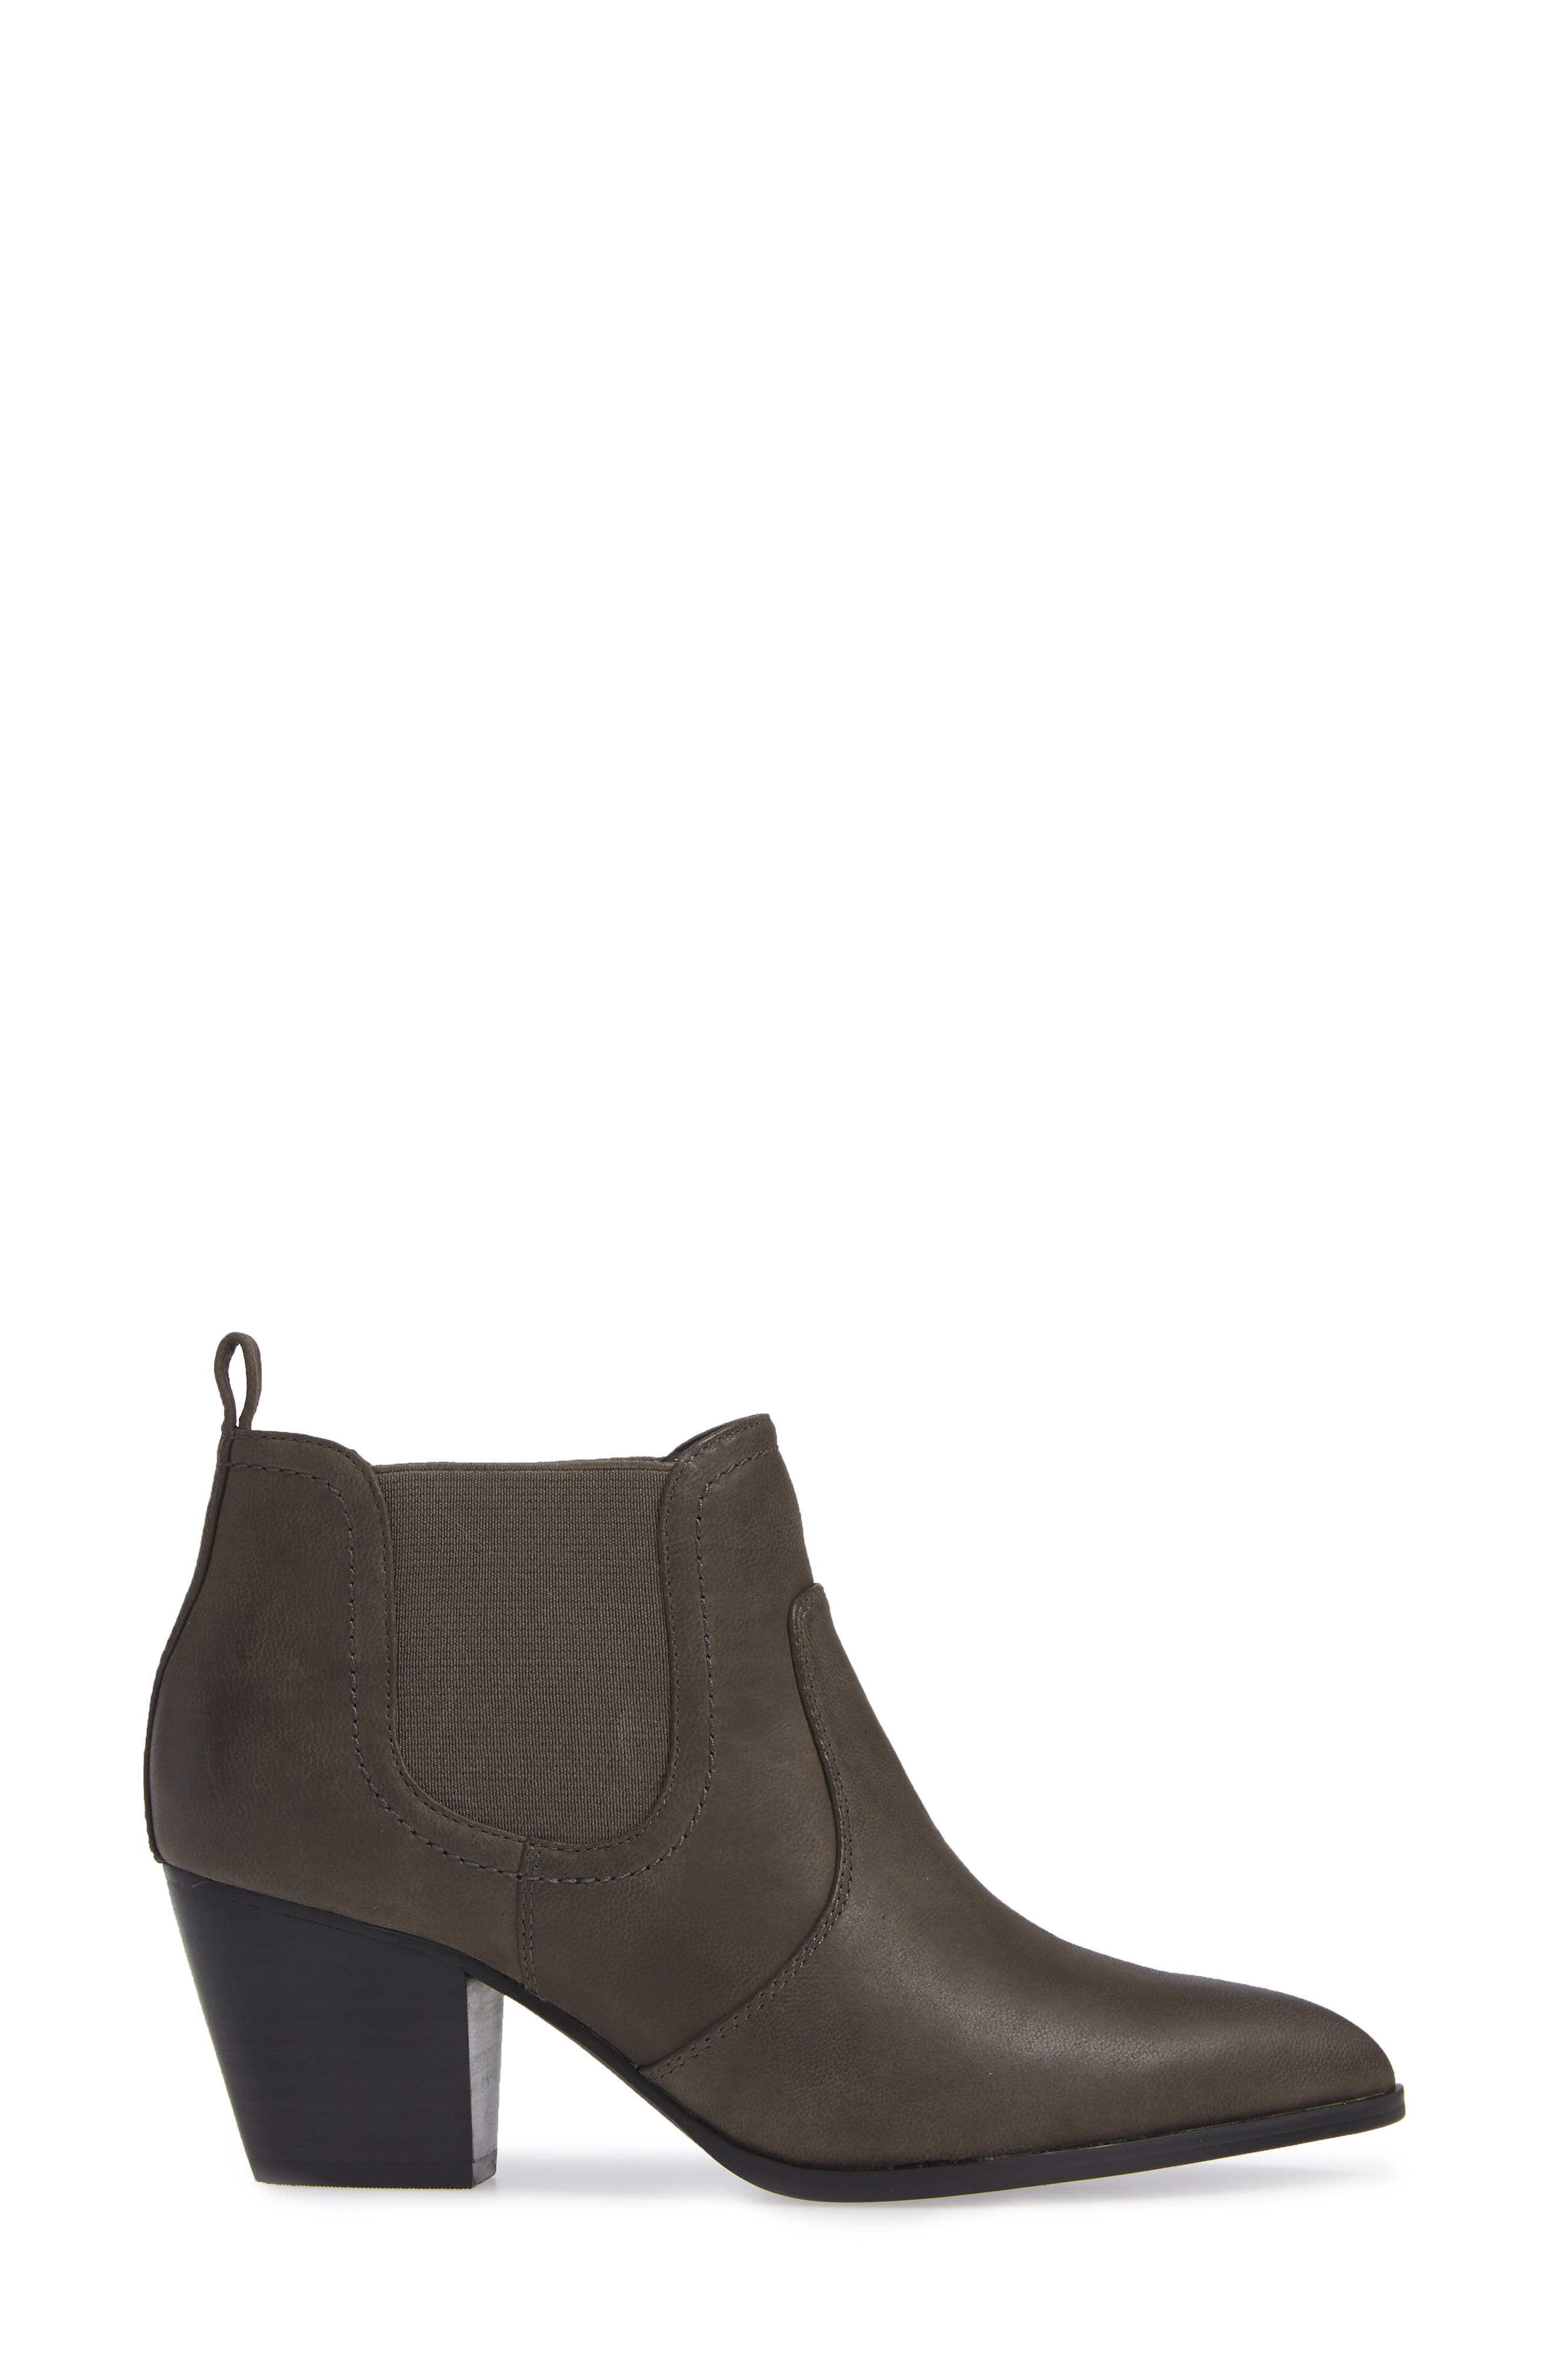 Emerson Chelsea Bootie,                             Alternate thumbnail 3, color,                             GREY BURNISHED LEATHER